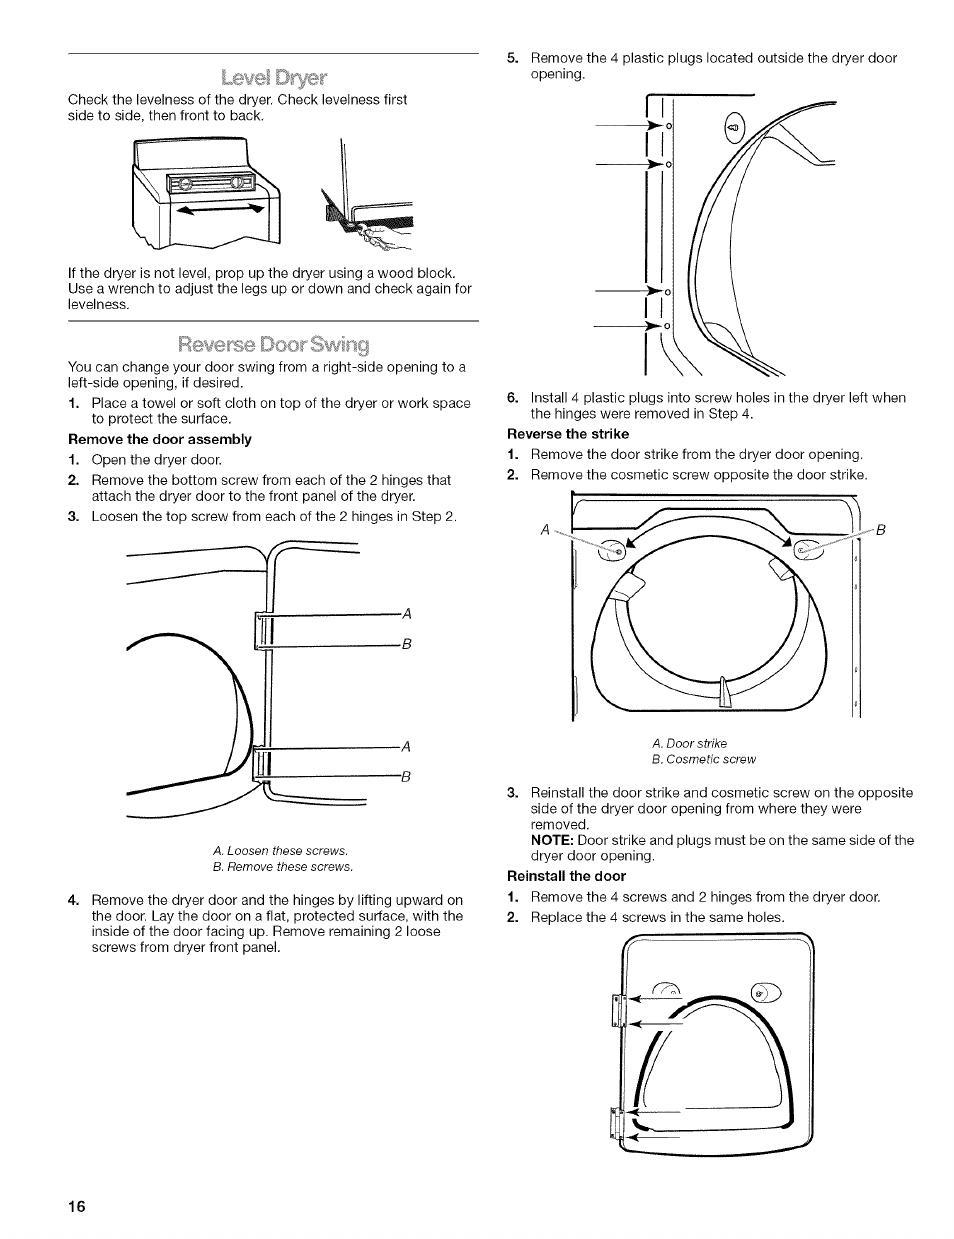 Wiring Diagram For Kenmore Elite Dryer Front Loader Diagrams Schematic He3 Heating Element Electric 90 Series